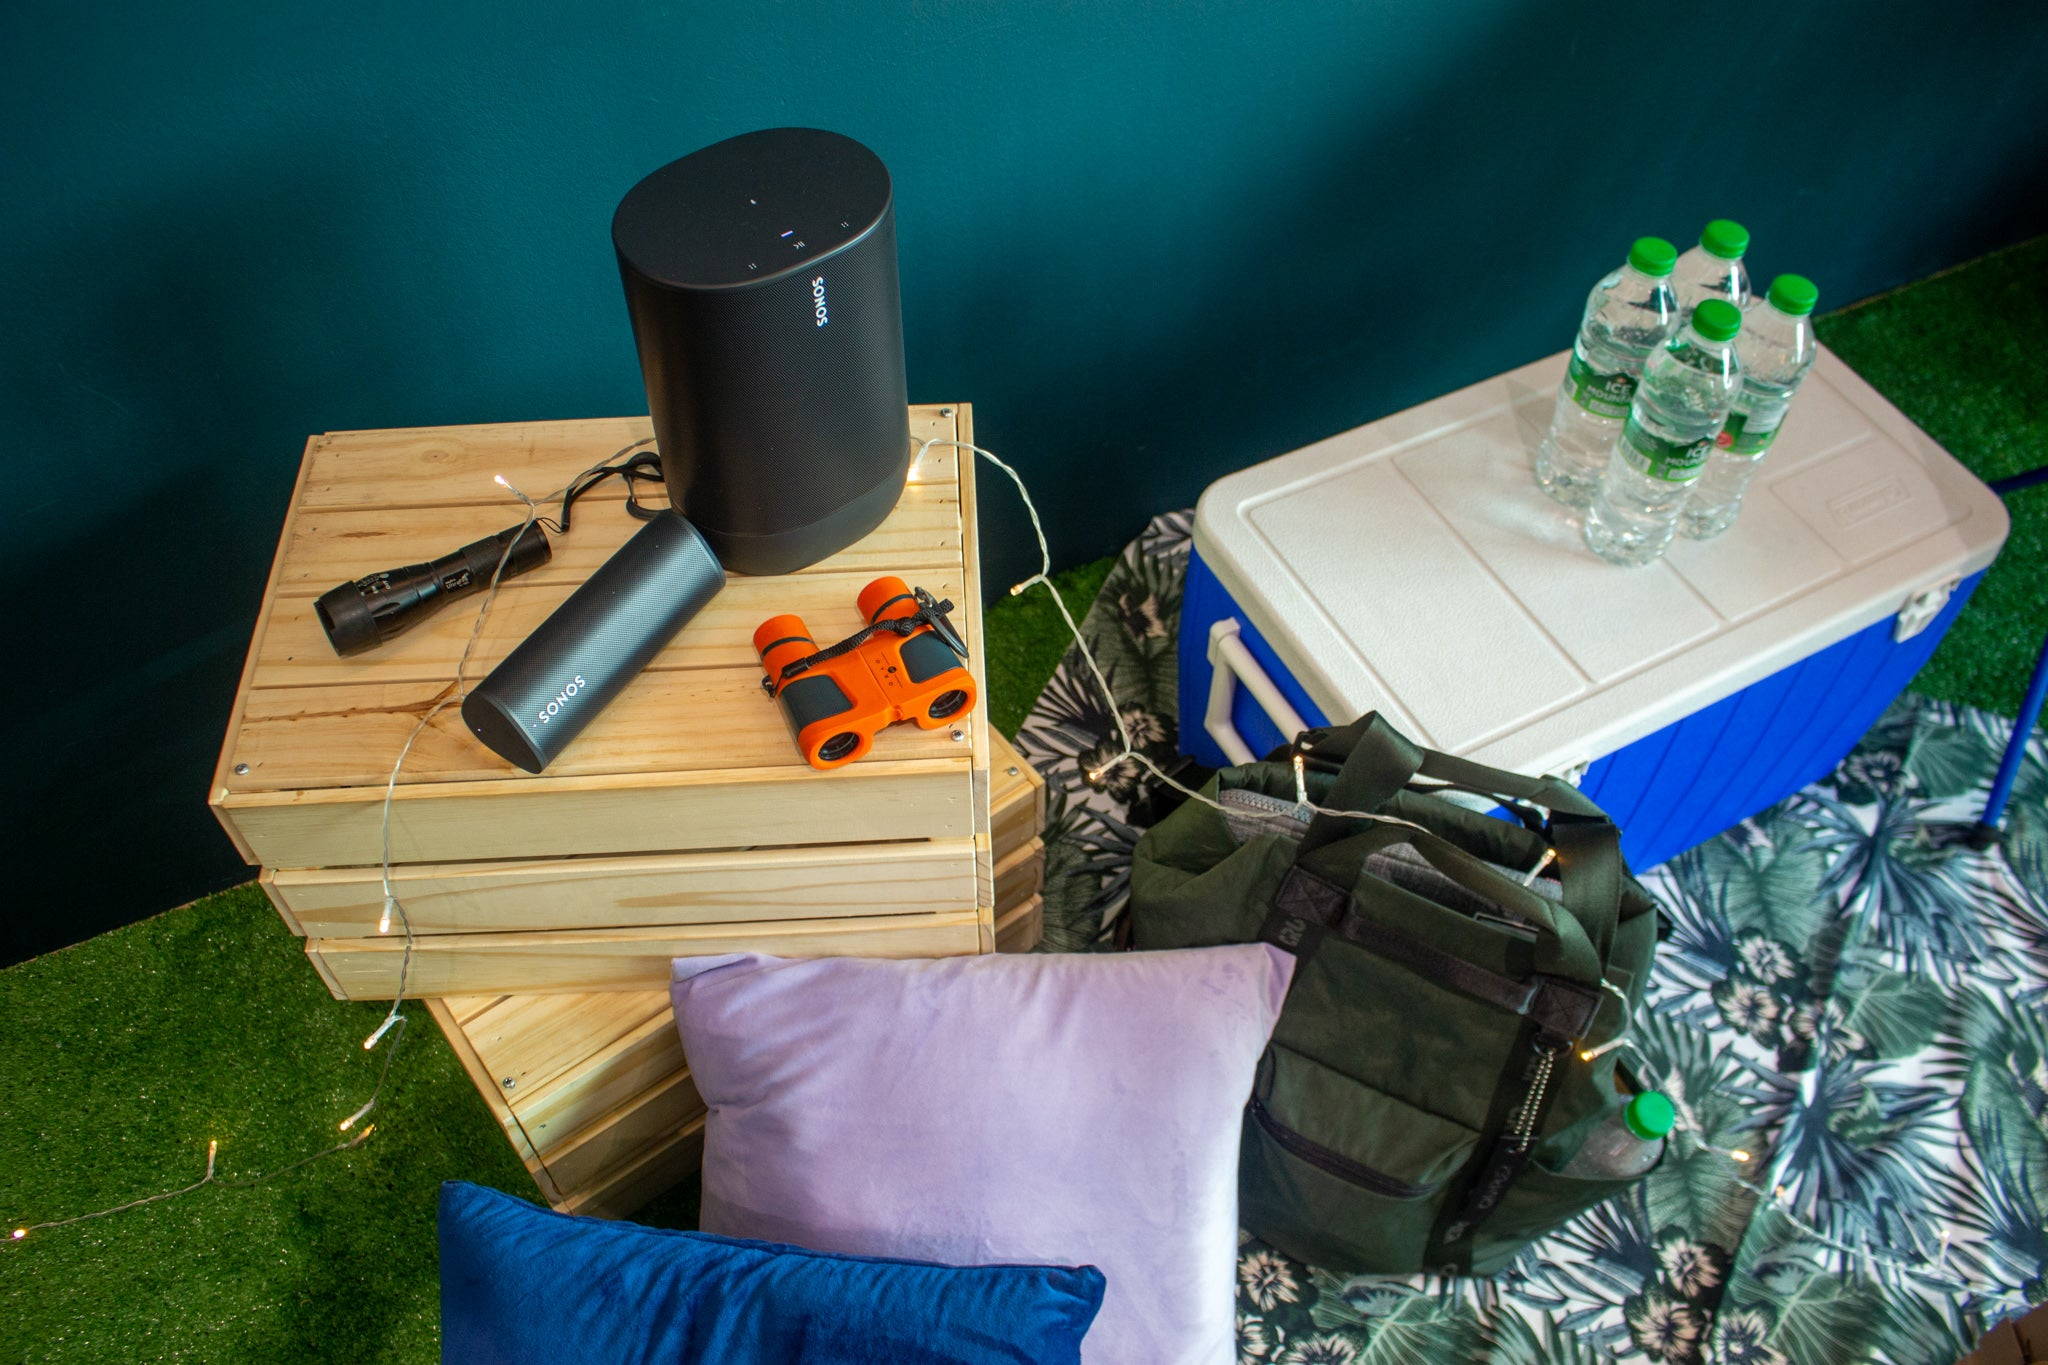 Sonos Roam Demonstration Listening Event (Pre-Launch): Durability and ruggedness